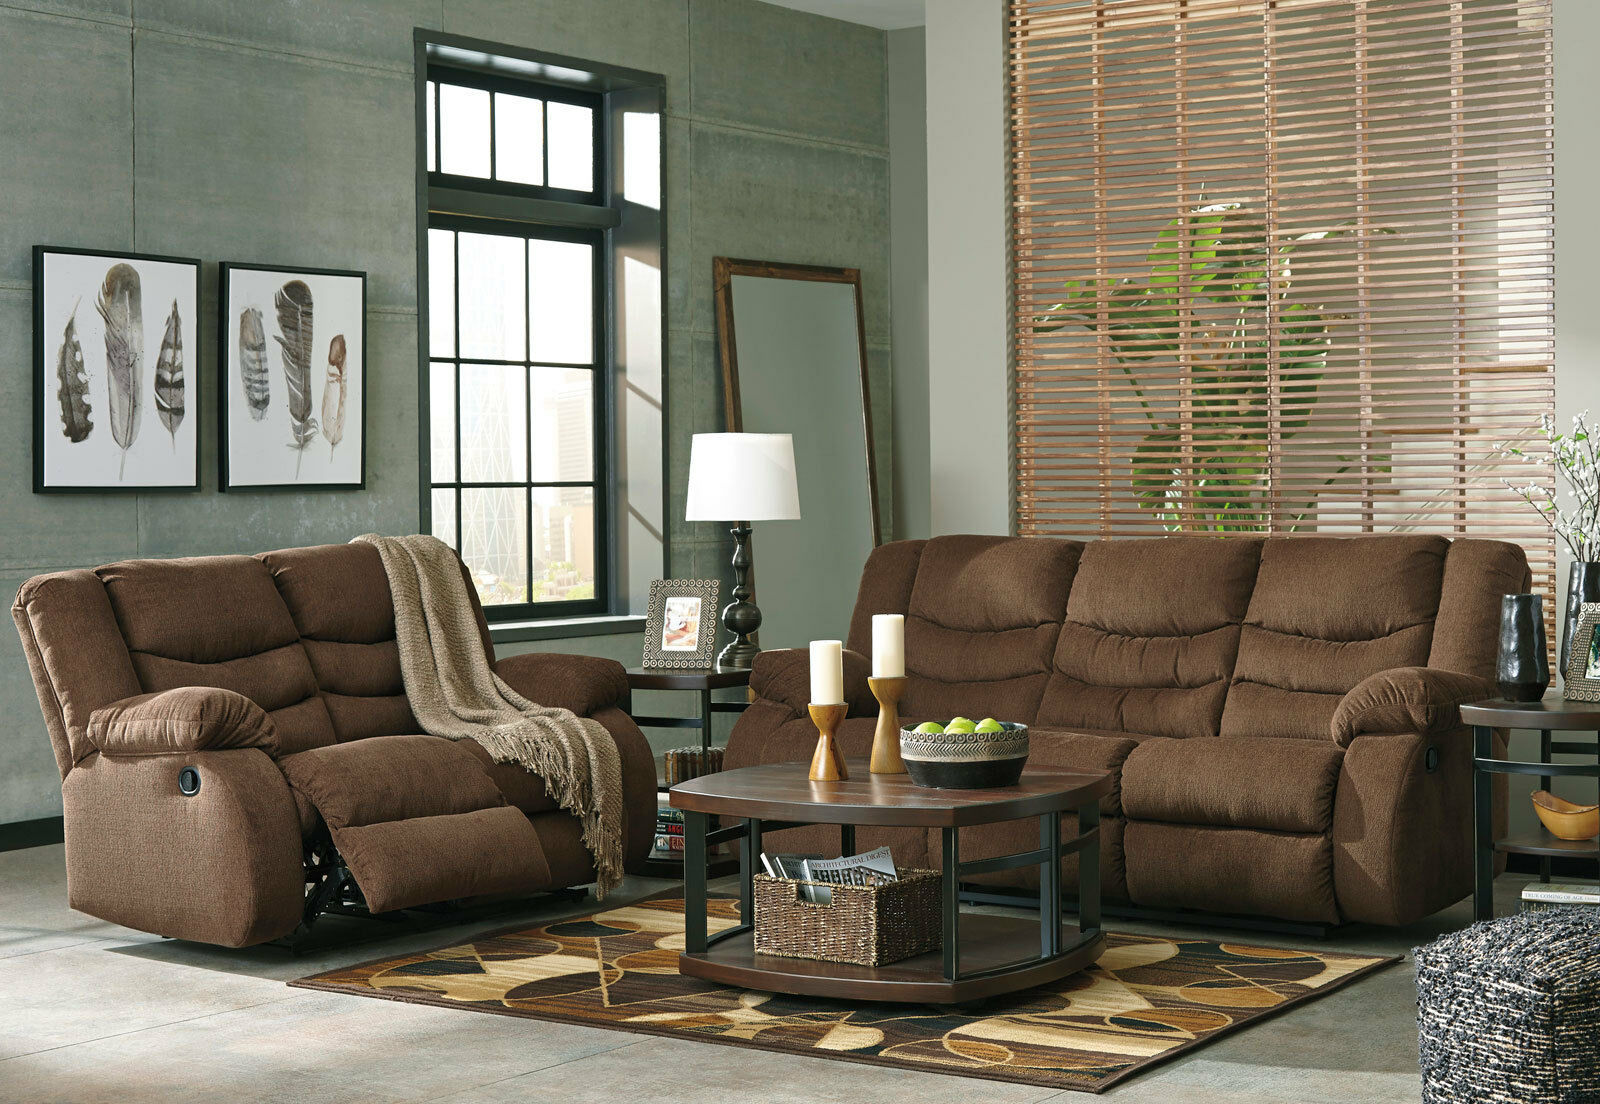 Talley modern living room couch set new brown fabric - Fabric reclining living room sets ...